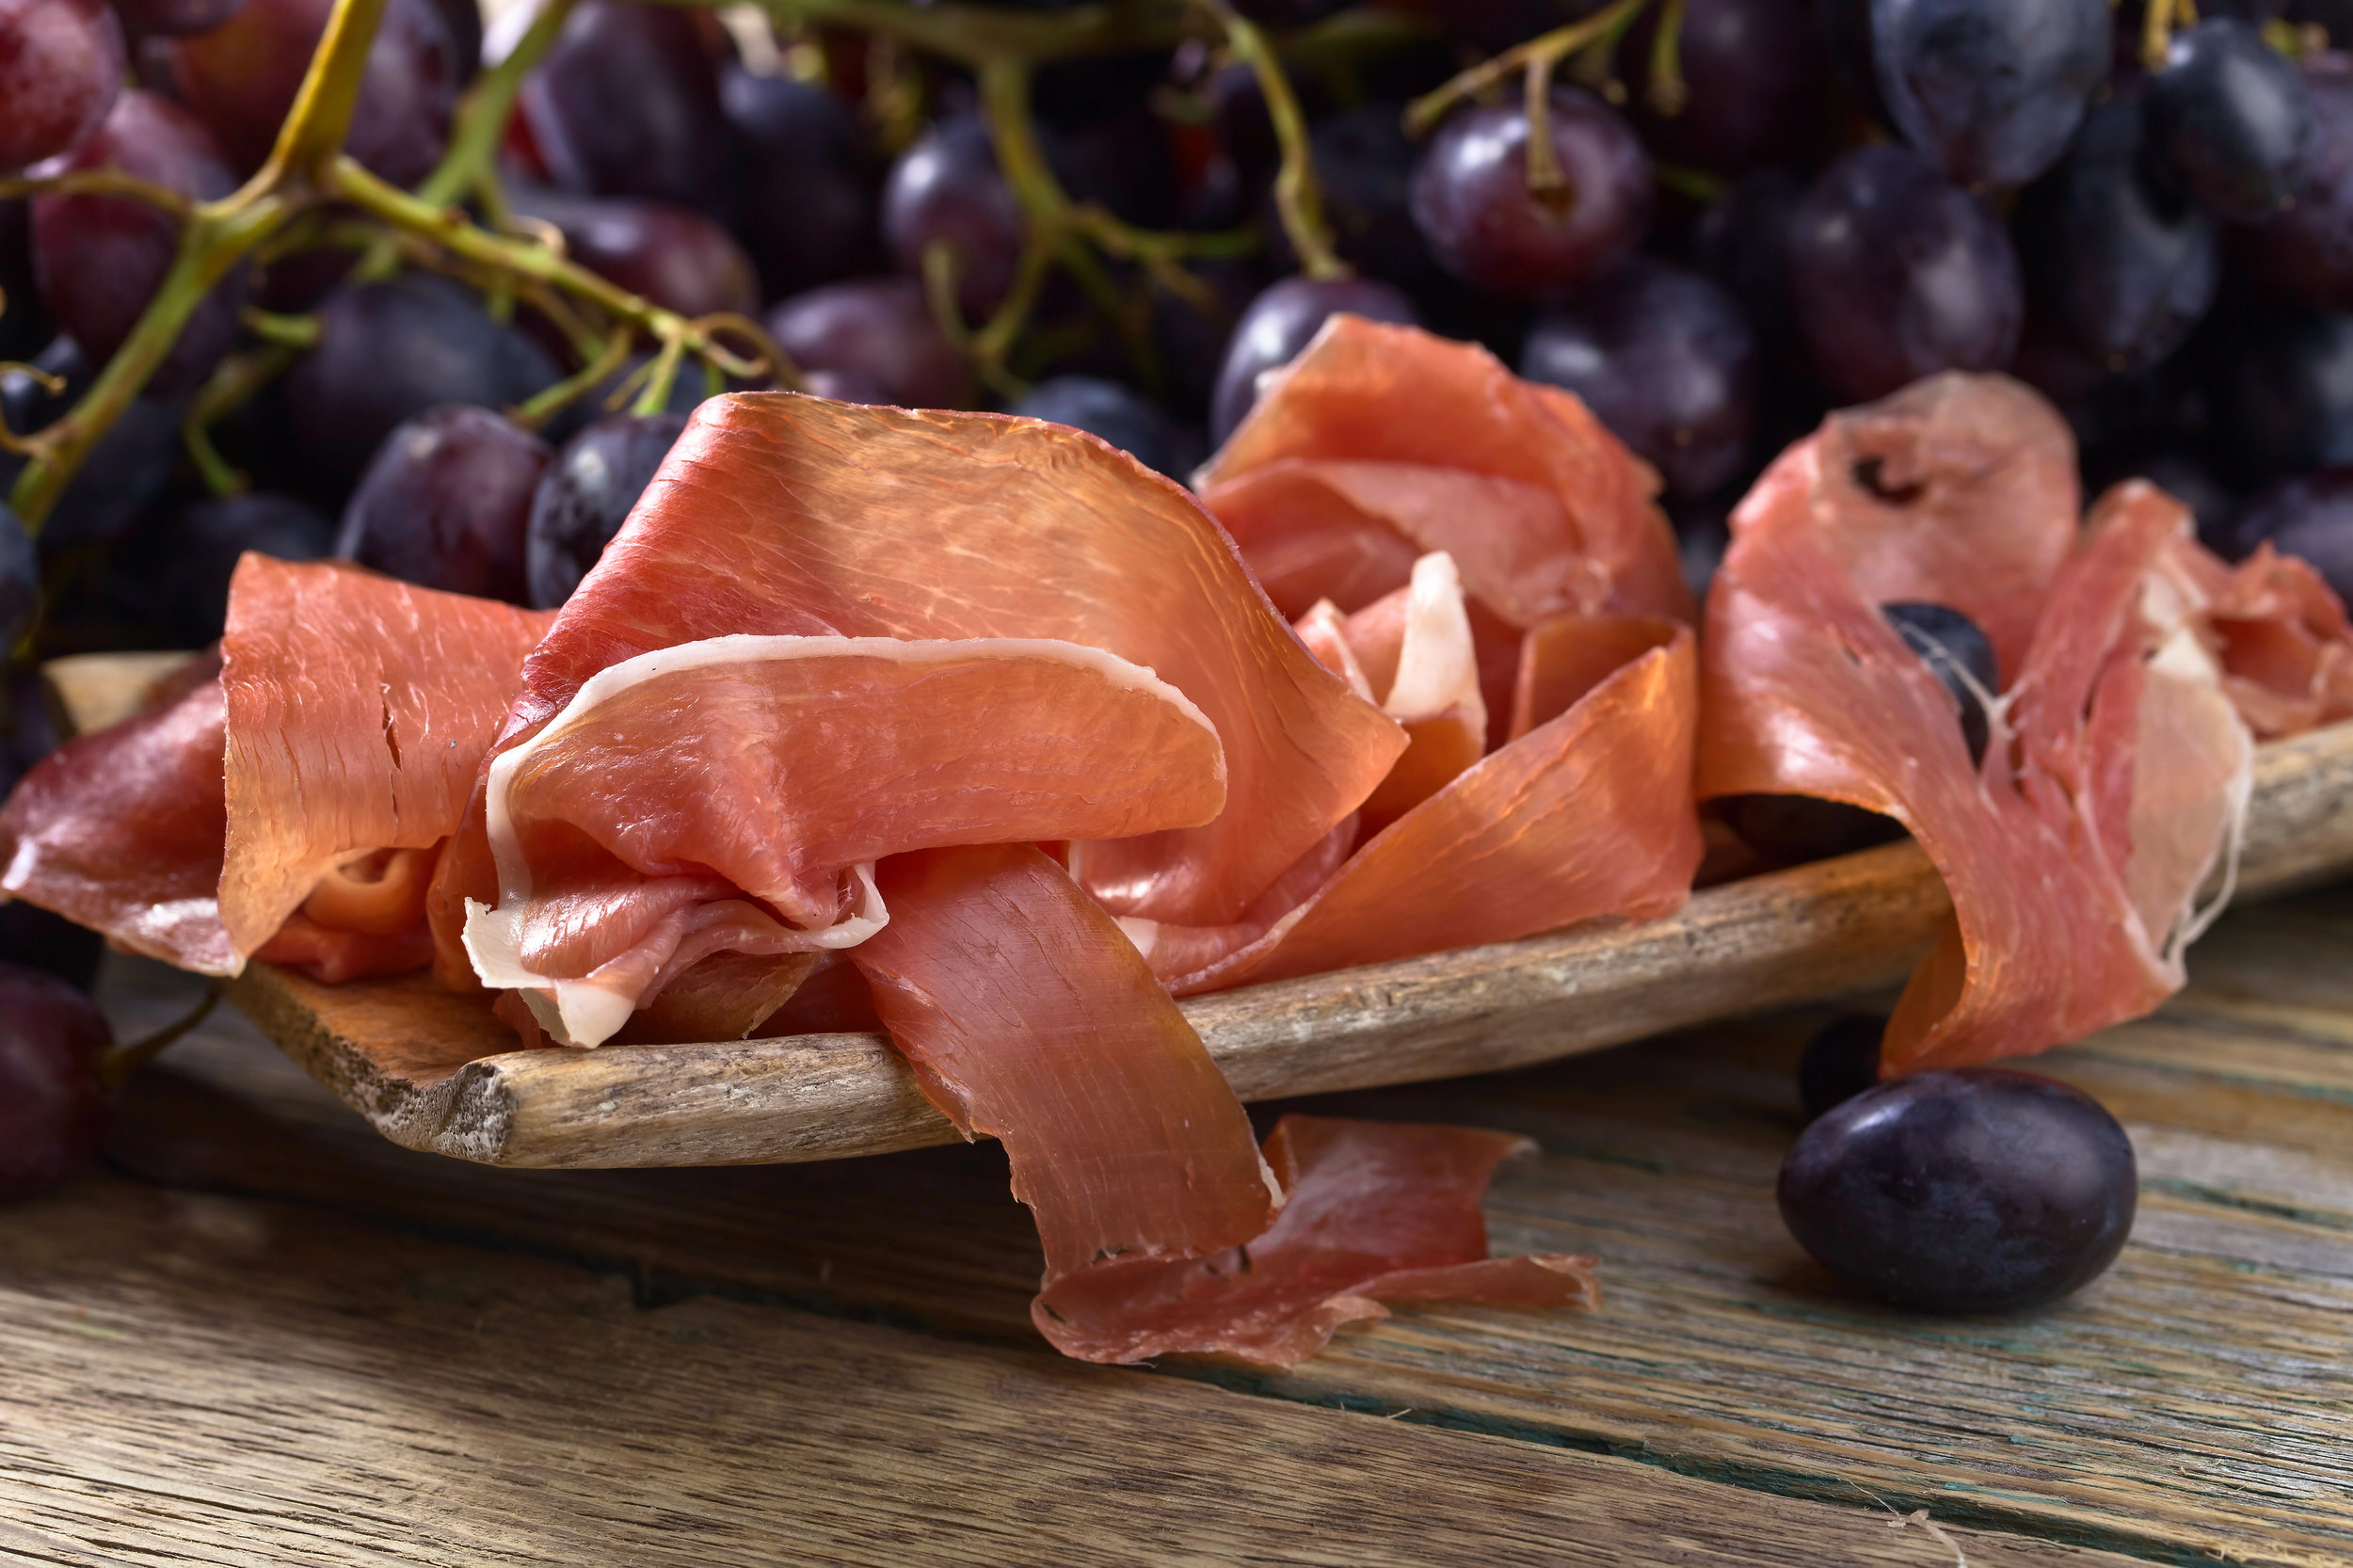 Prosciutto-with-blue-grape-.-821024268_3869x2579.jpeg